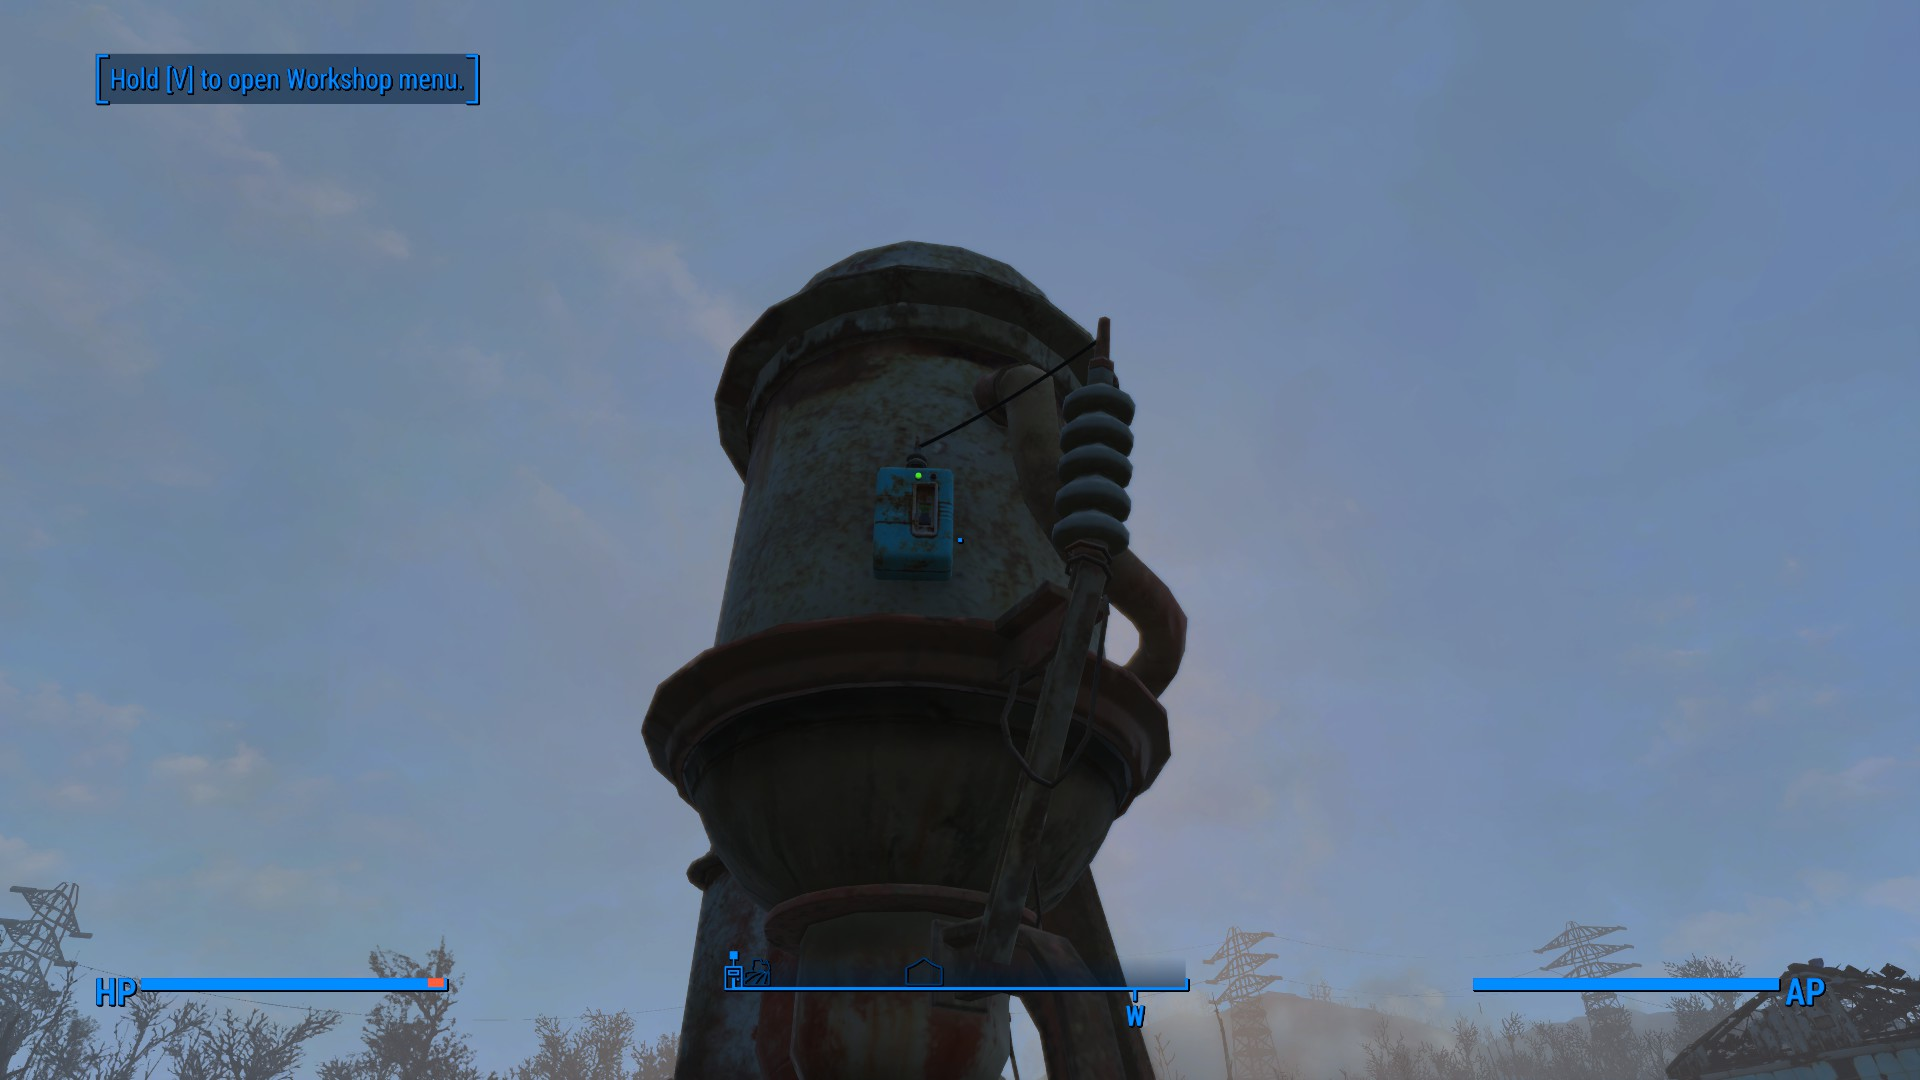 Generator Fusebox At Fallout 4 Nexus Mods And Community Fuse Box Possibly Unintended Awesomeness